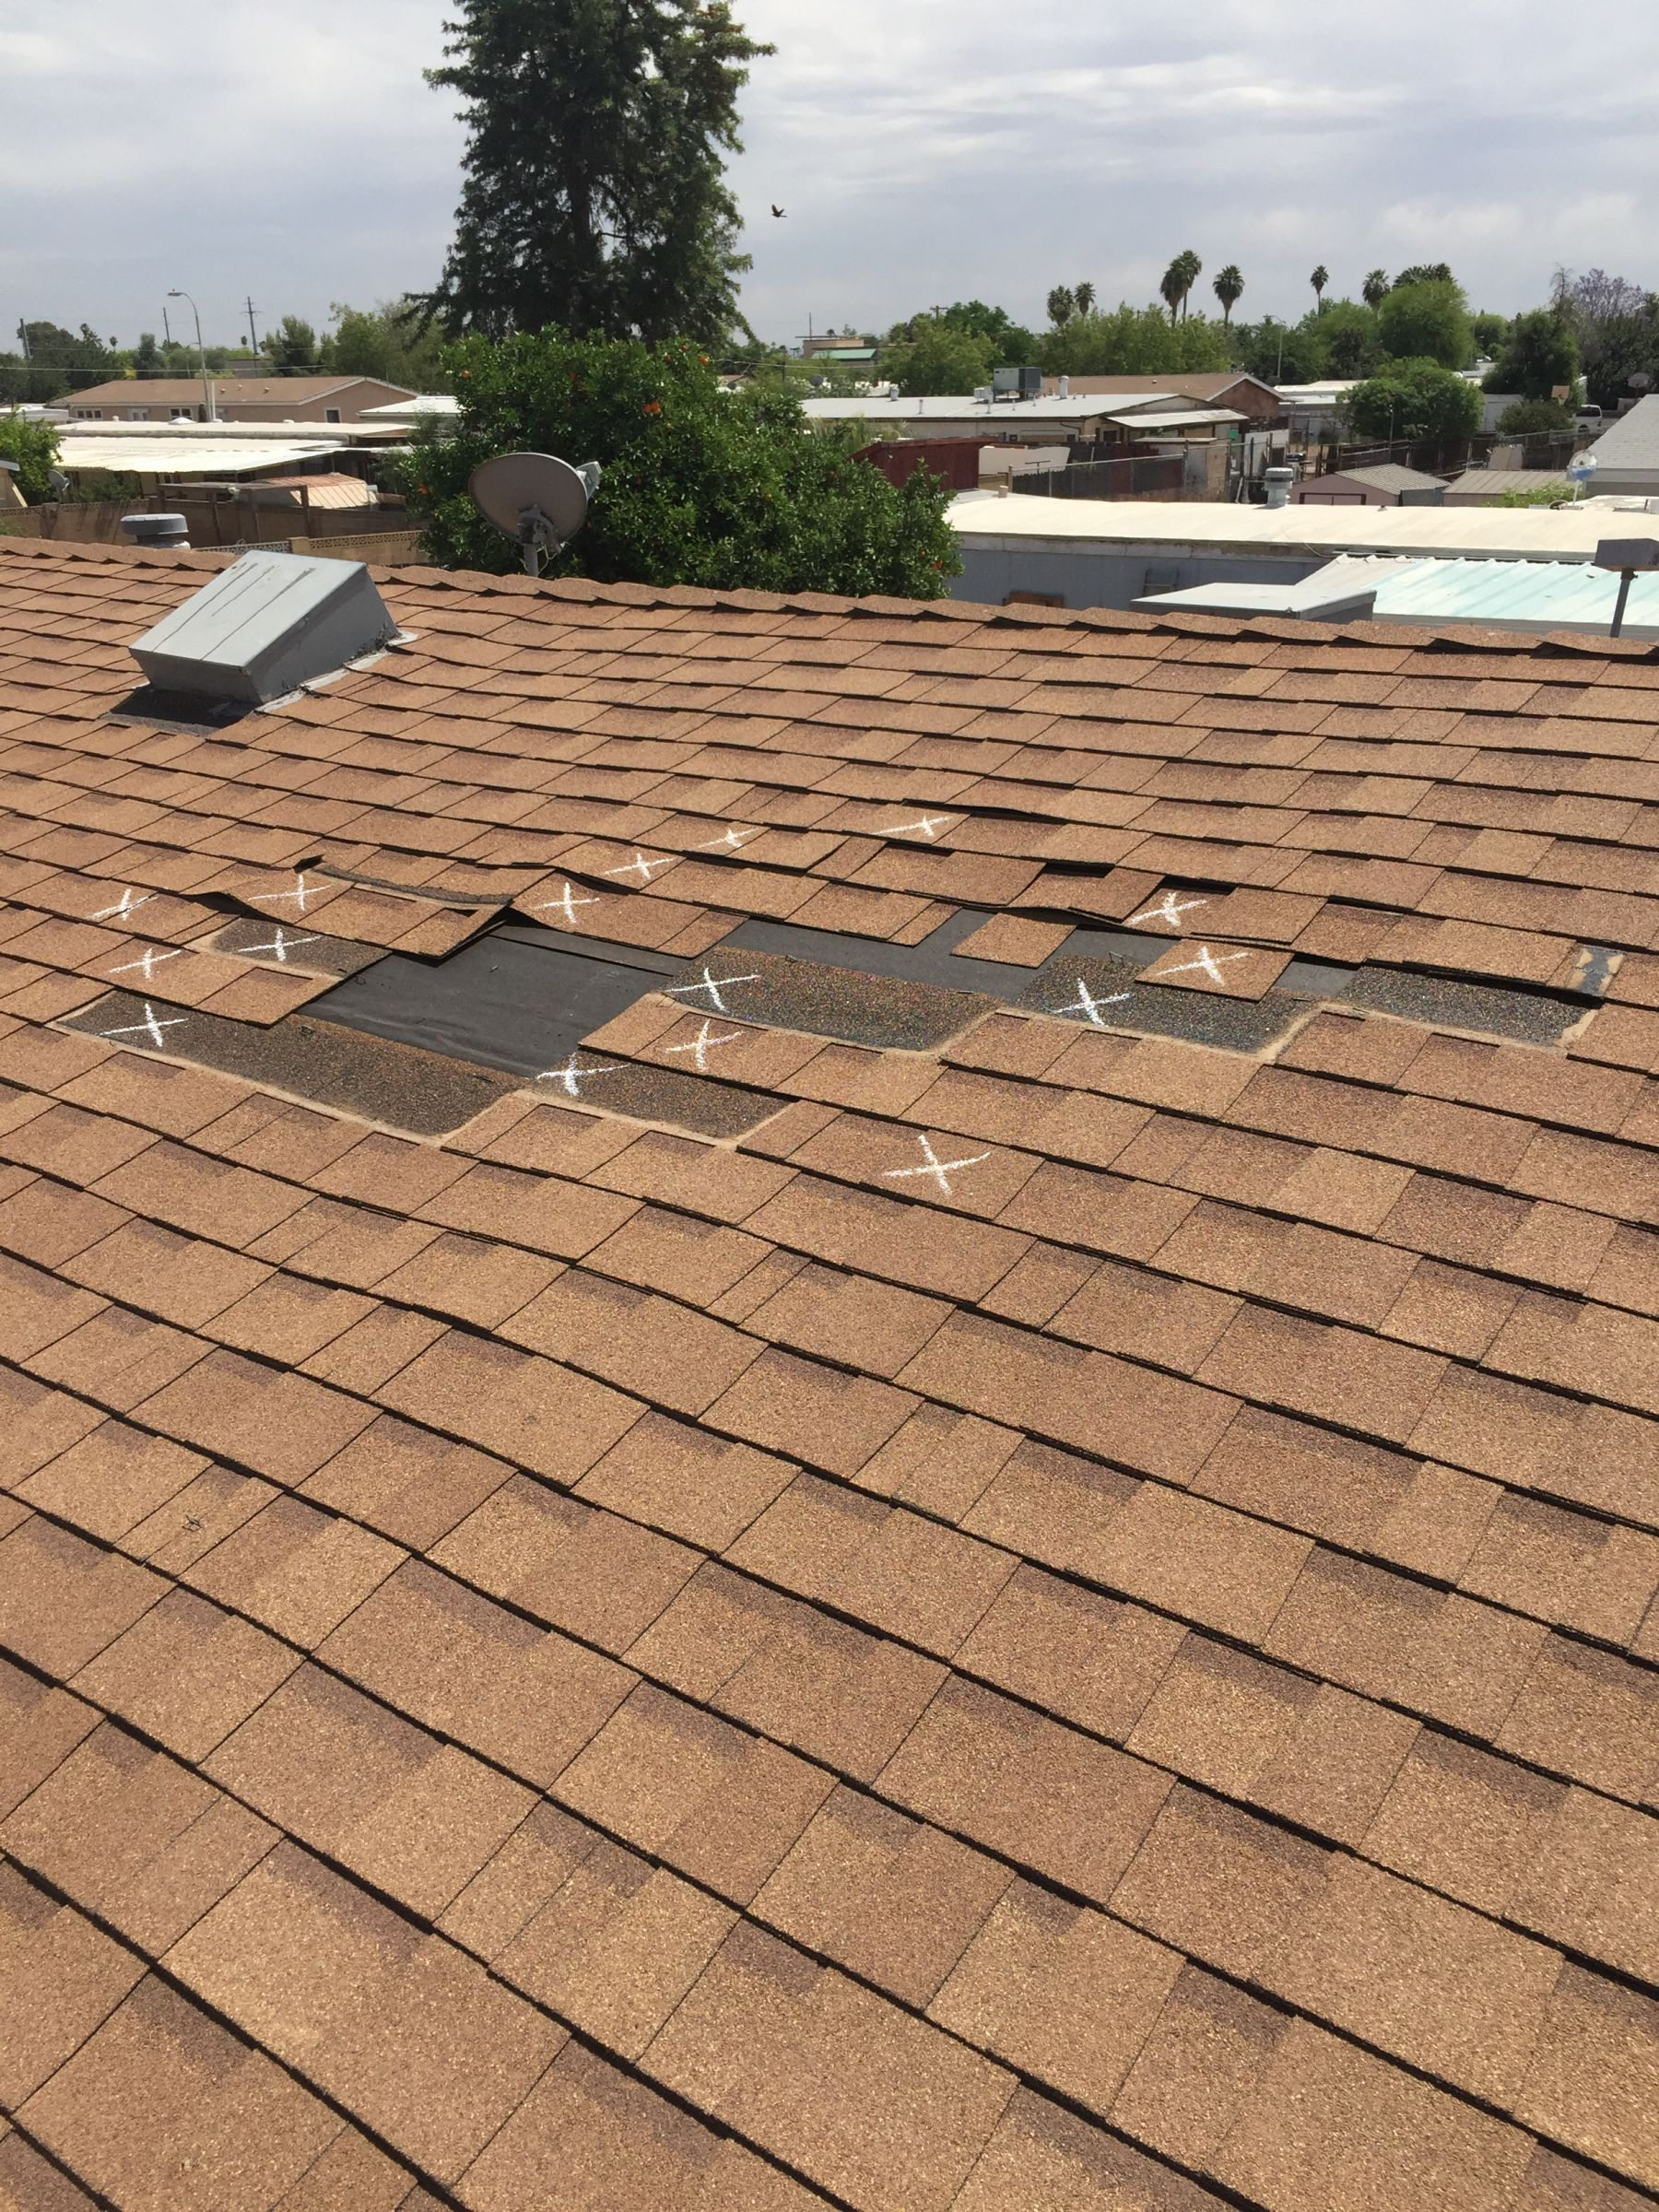 How To Inspect Your Roof For Damage And Water Leaks